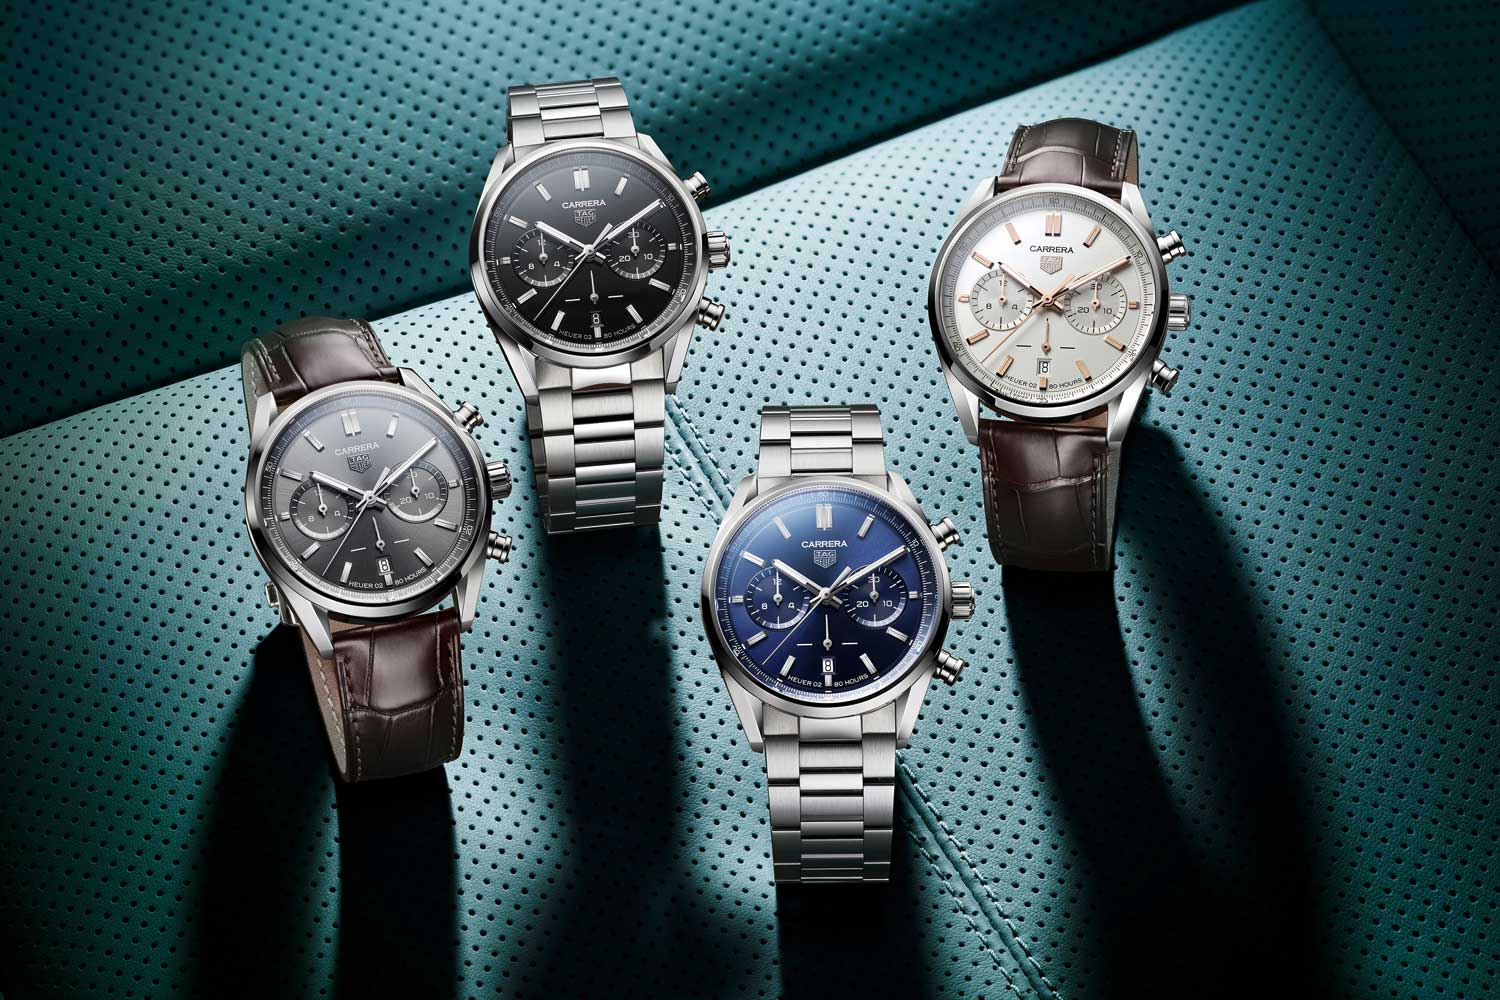 TAG Heuer Carrera Chronograph in 42mm comes in four variations with options for the stainless-steel H-shaped bracelet and leather straps